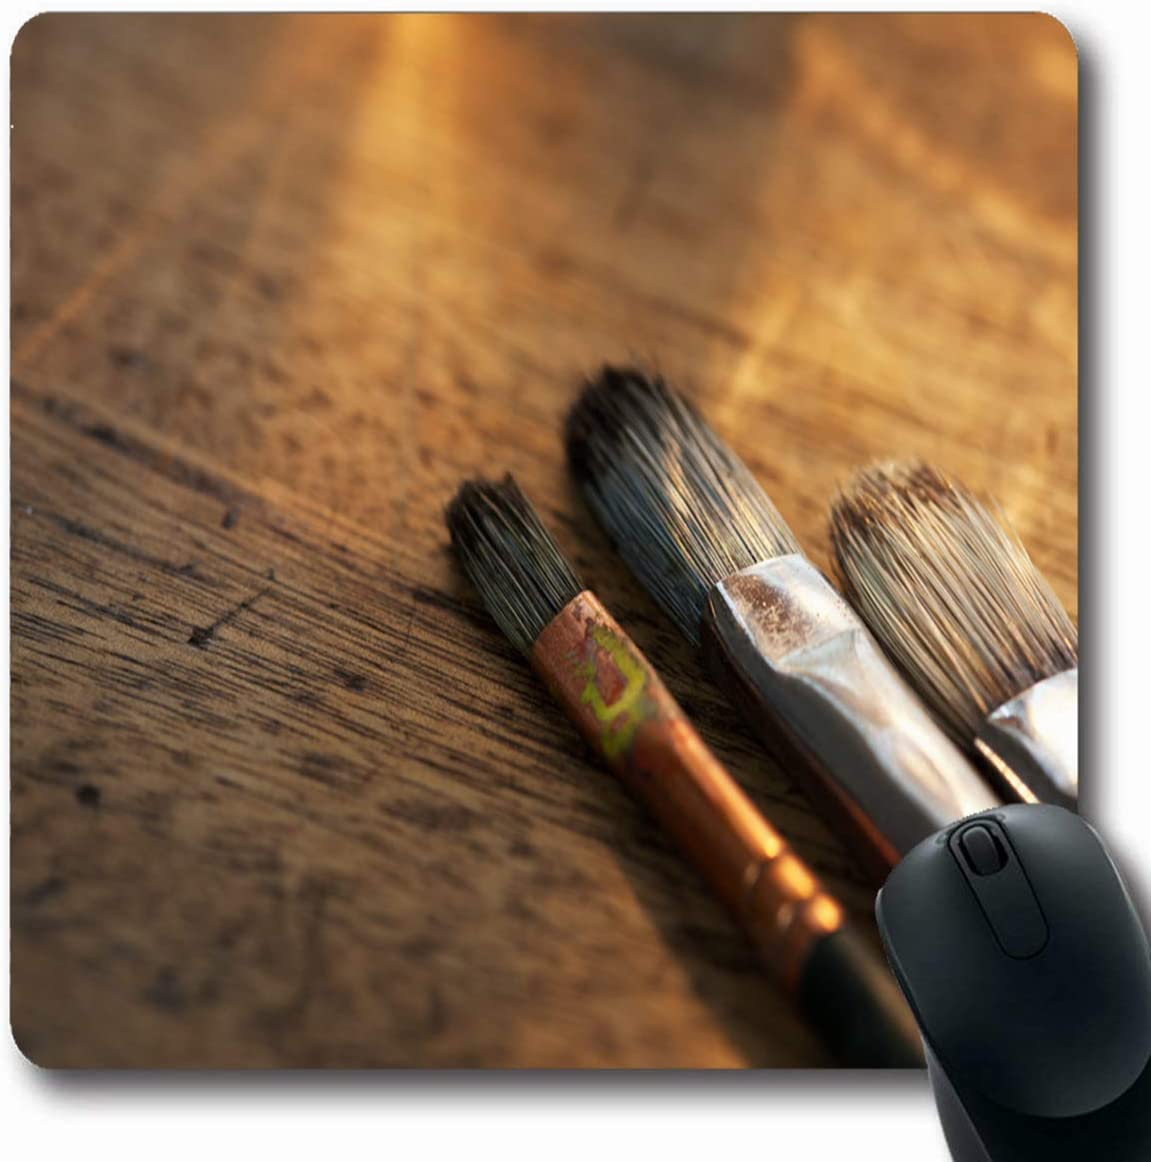 RWYZPAD Antique Fine Painting Brushes On Old Painters Aging Desk Artist Brush Gallery Vintage Stroke Design Oblong Shape 8.6 X 7.1 in Non-Slip Gaming Mouse Pad Rubber Oblong Mat